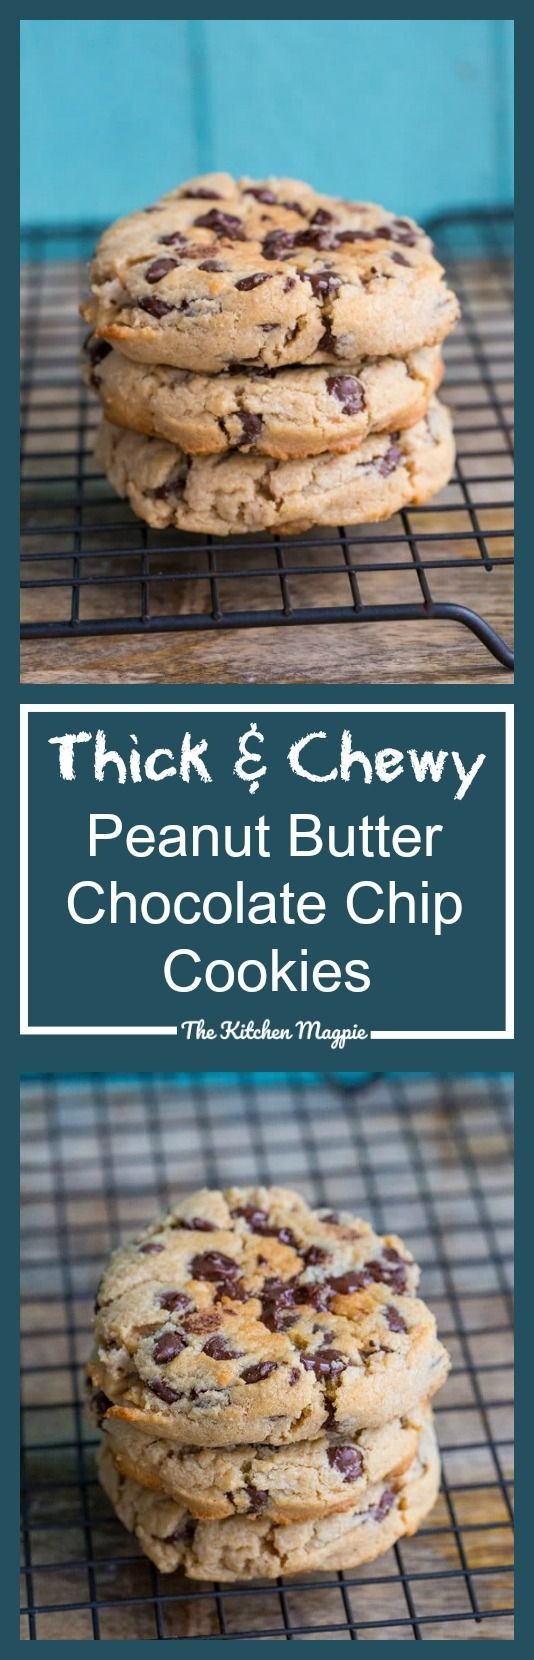 Thick & Chewy Peanut Butter Chocolate Chip Cookies - The Kitchen Magpie